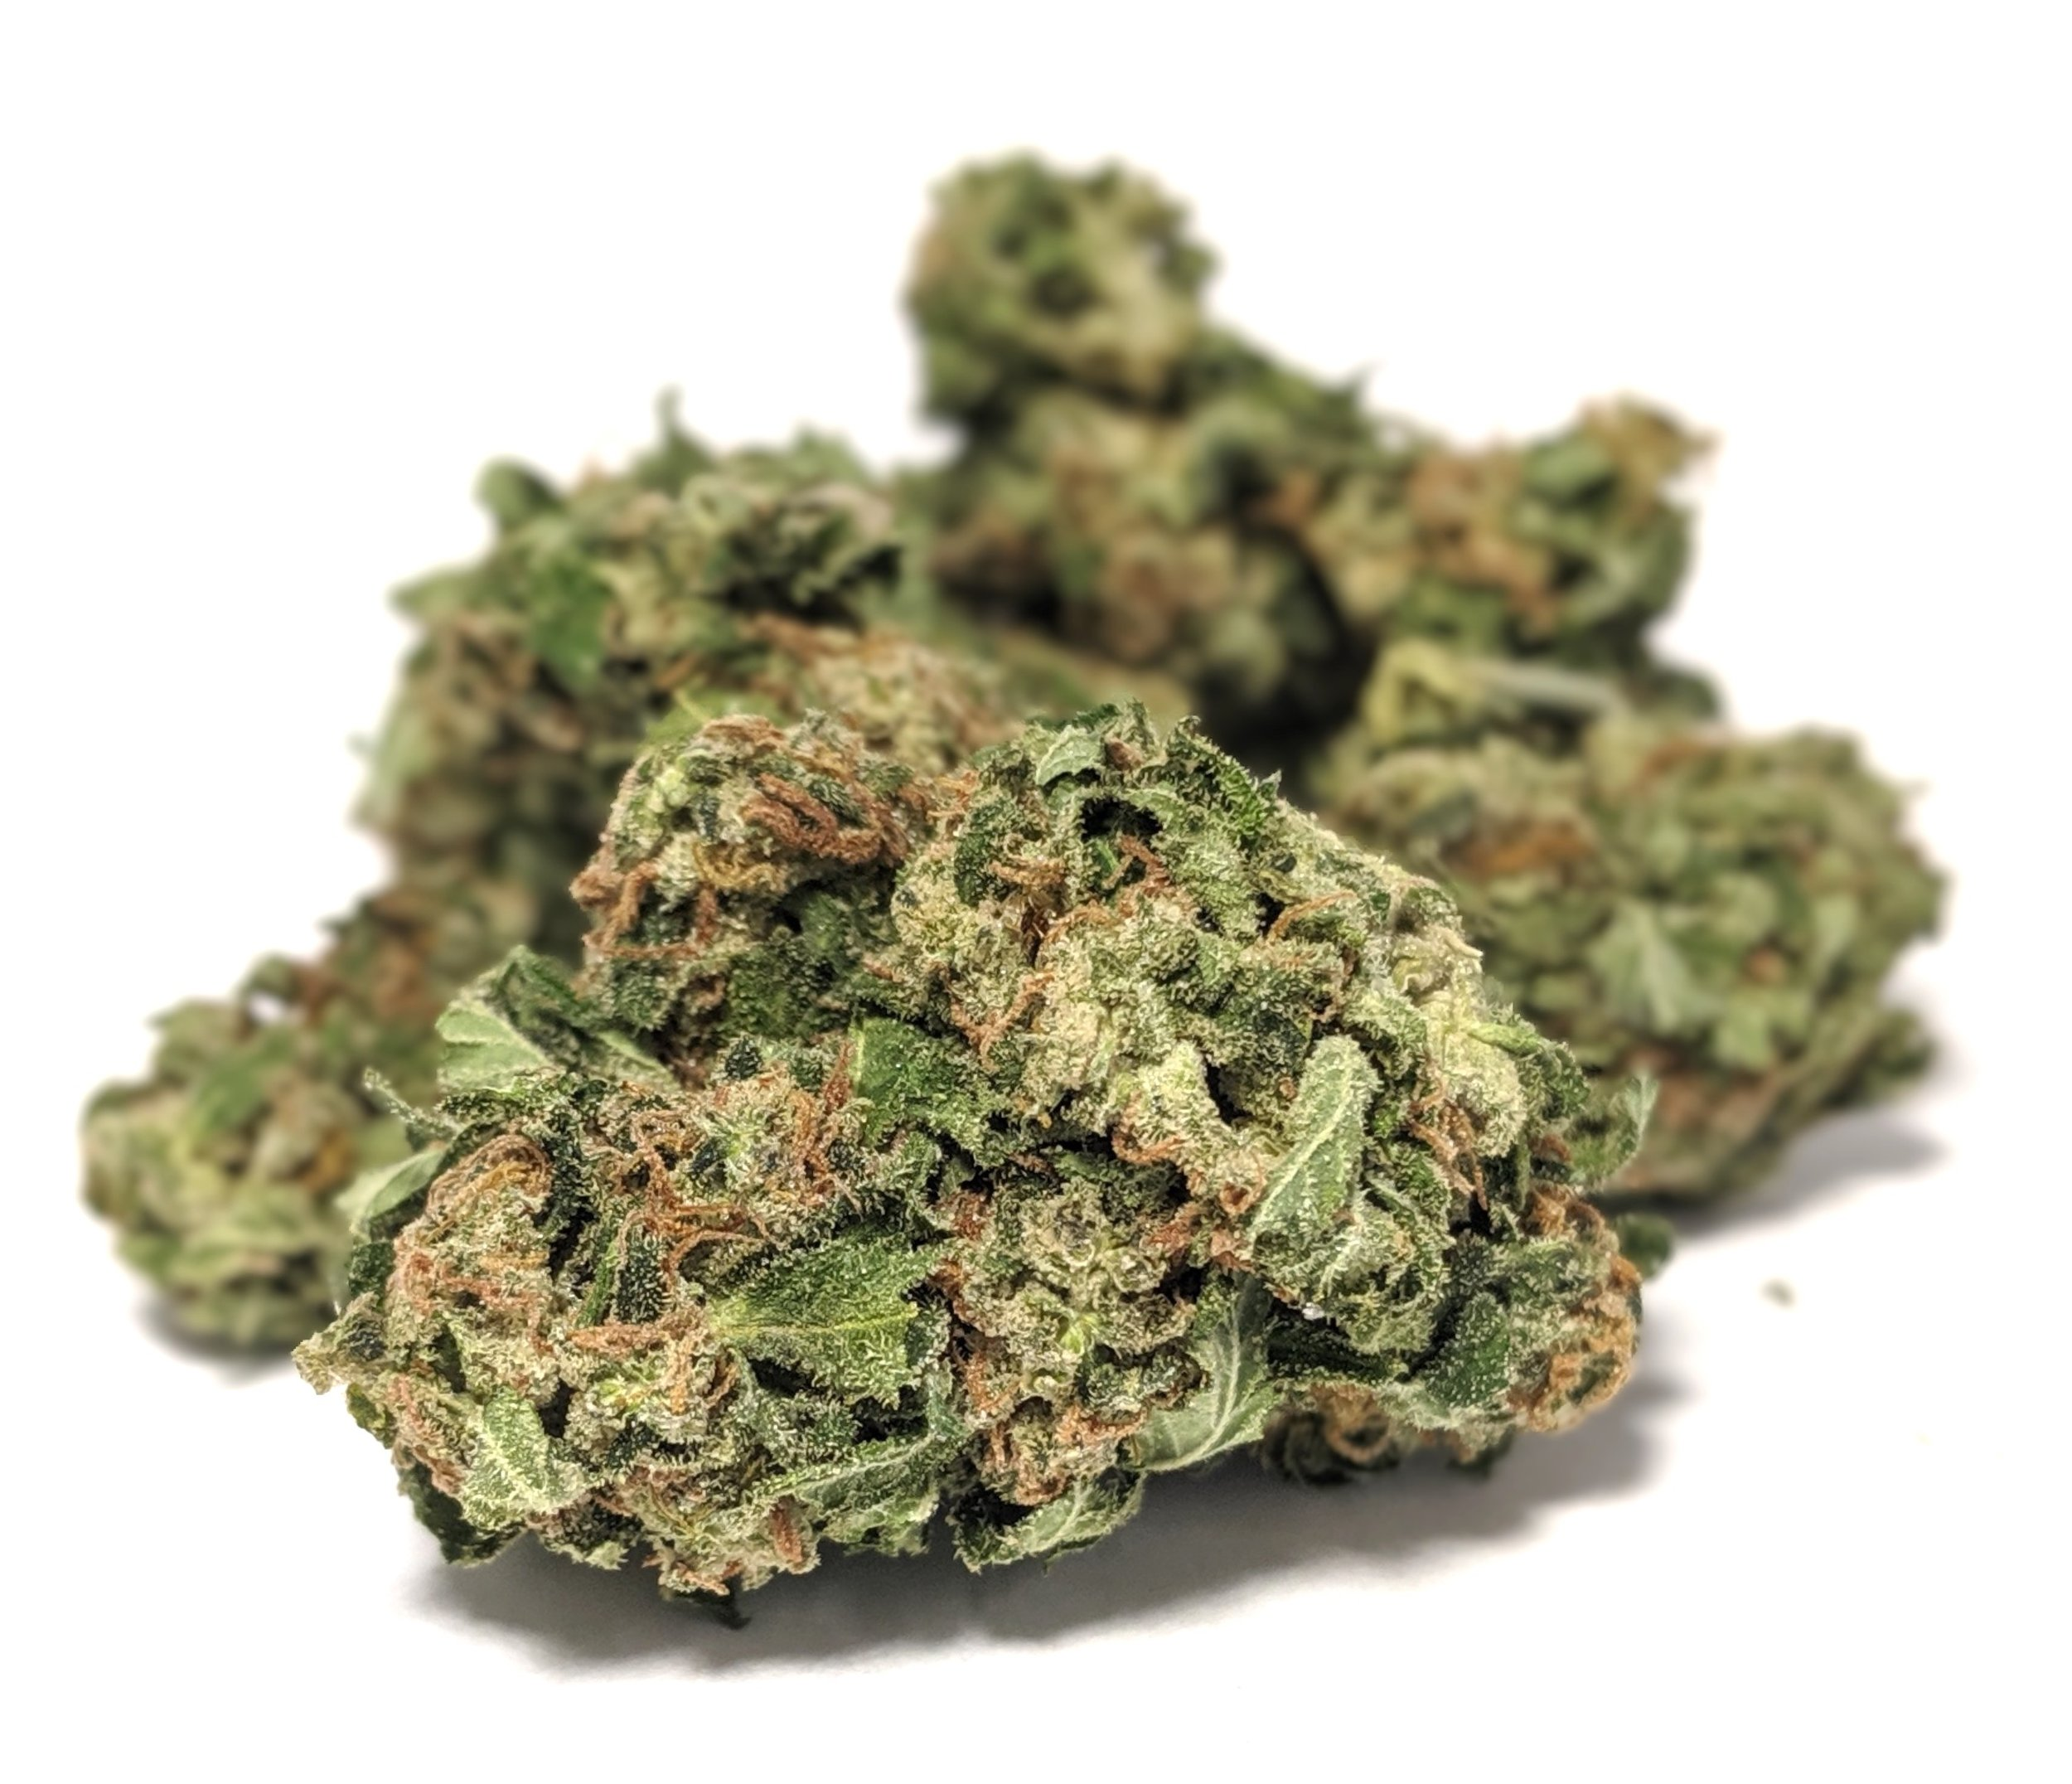 Sapphire OG- Indica    1/4- $50 1/2-$90 OZ-$160   Bred by Humbolt Seed Organization and grown by Gold Leaf, this indica smells like an amazing blend of petroleum, pine, chocolate, citrus and flowers. The buds have dense calyx formations with dark hues of green and purple covered in a layer of trichomes, with orange hairs that seem to be escaping the buds. The effects are both mental and physical, starting with a pleasant euphoria producing effect and finishes with a nice feeling of relaxation.